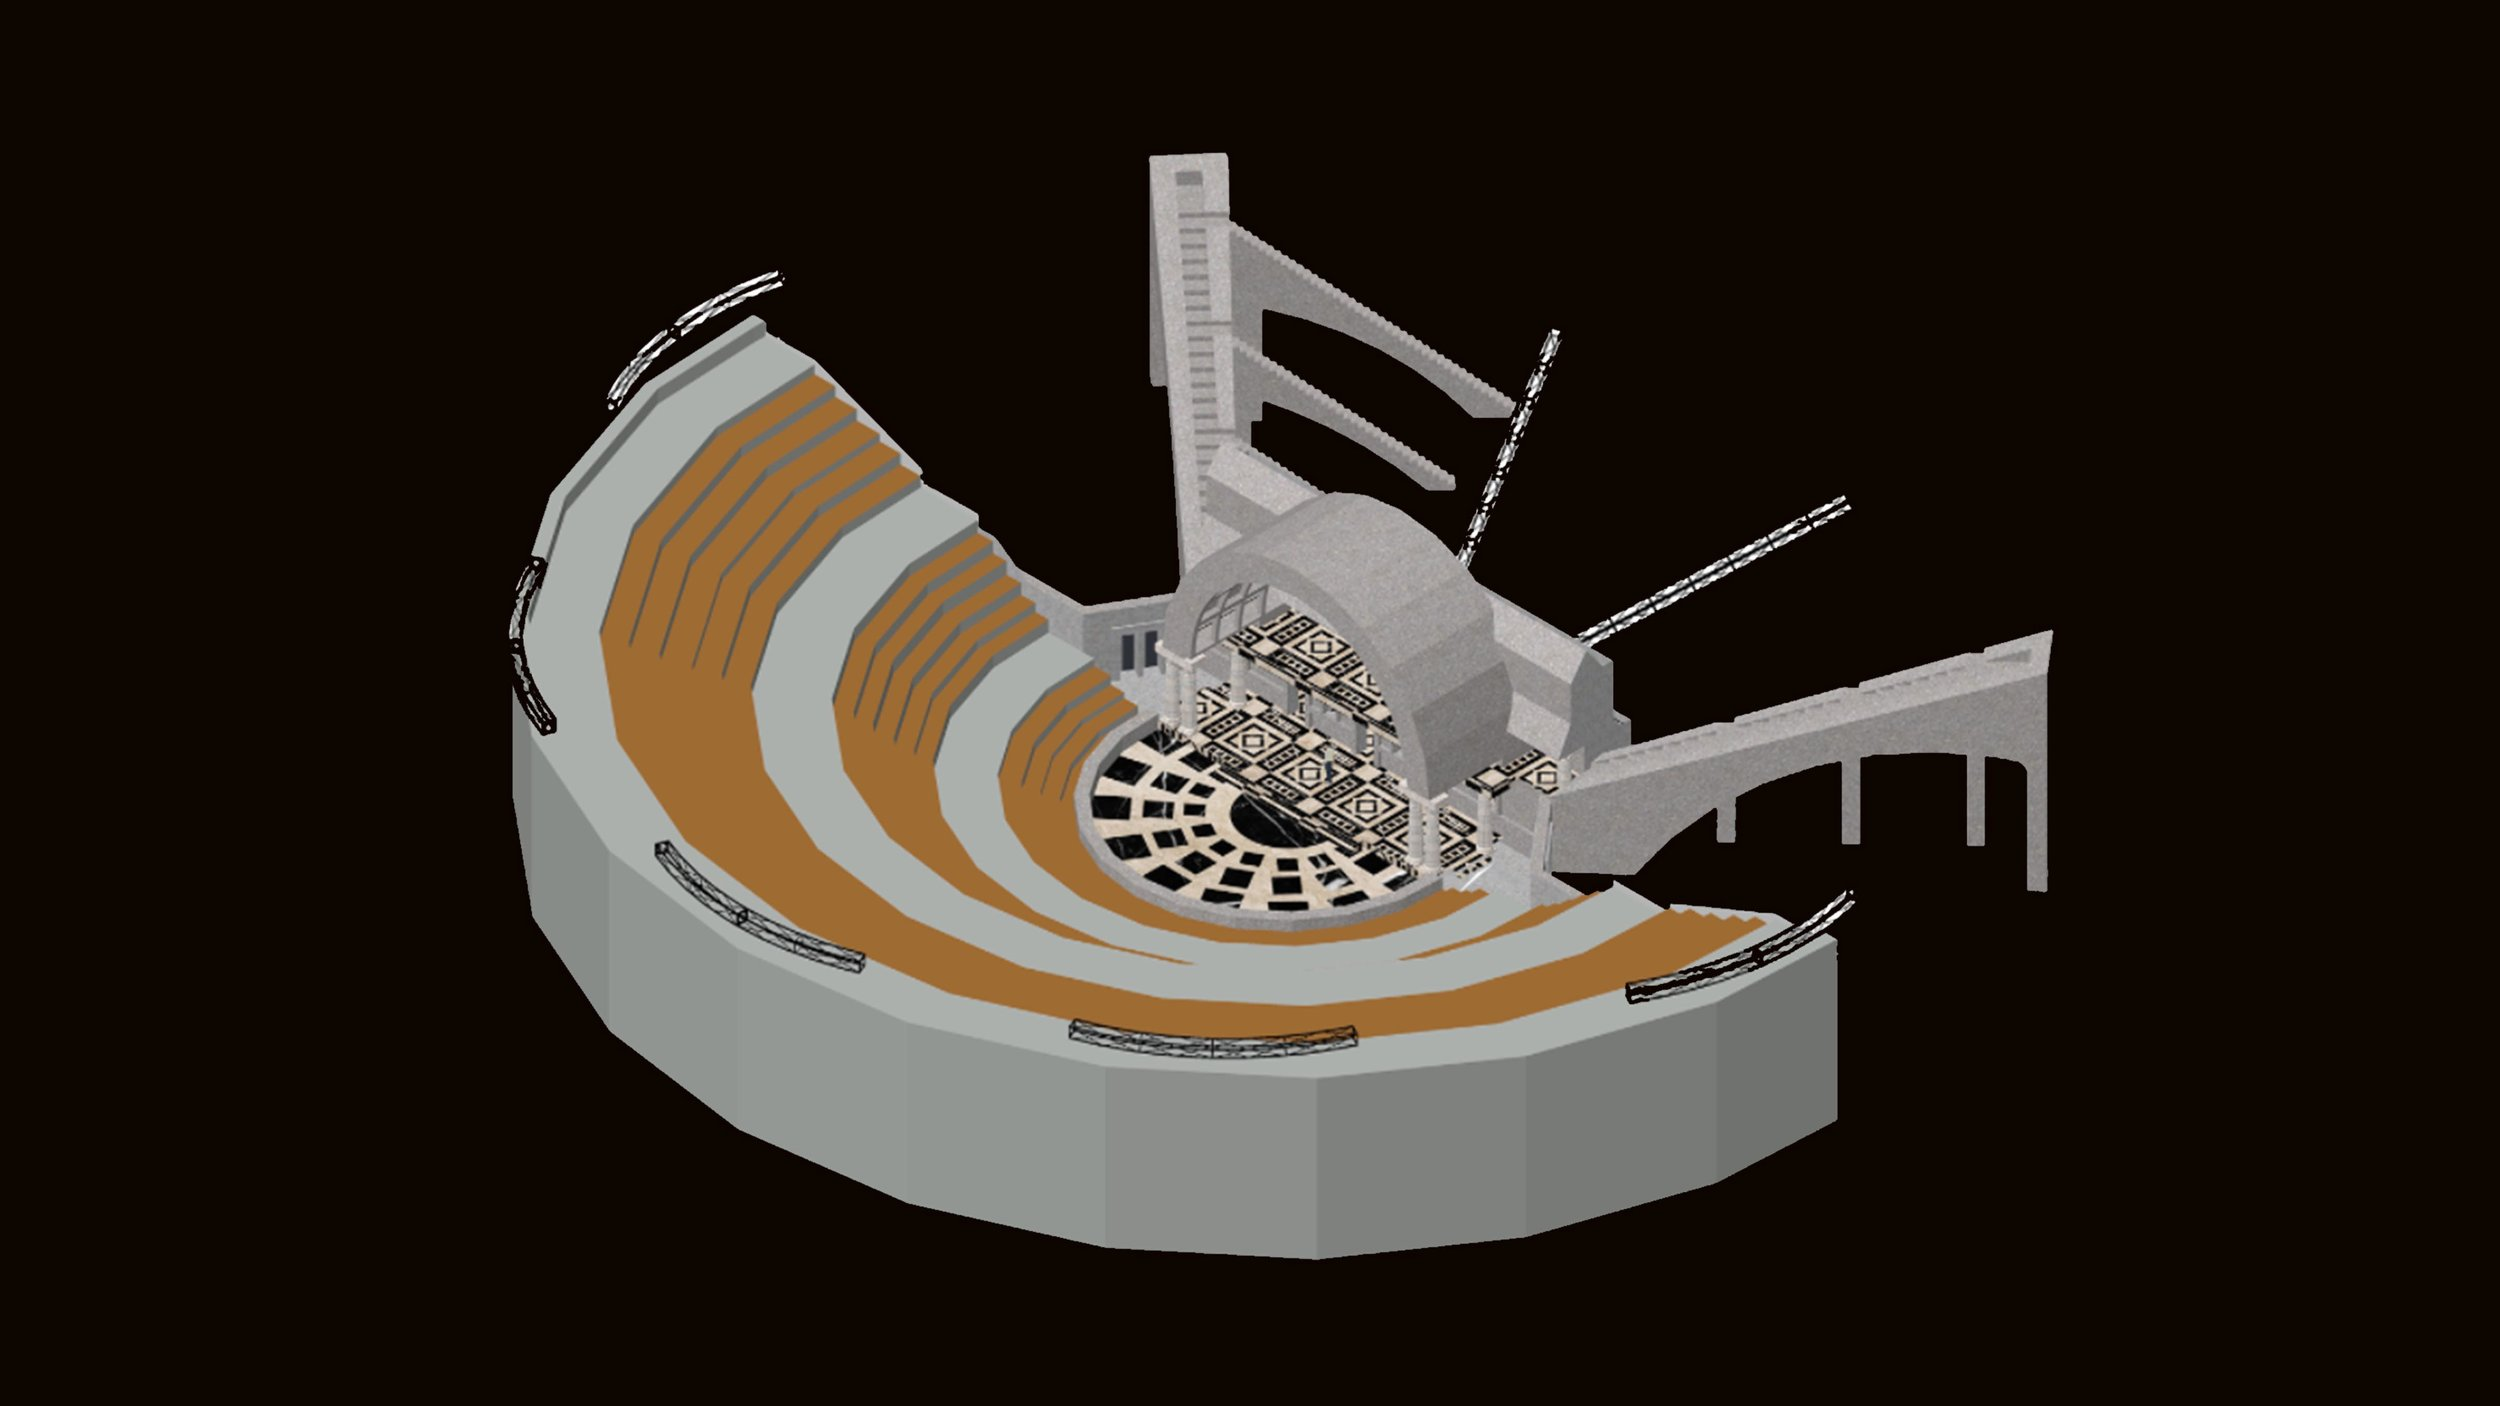 Isometric view of the set and lighting positions